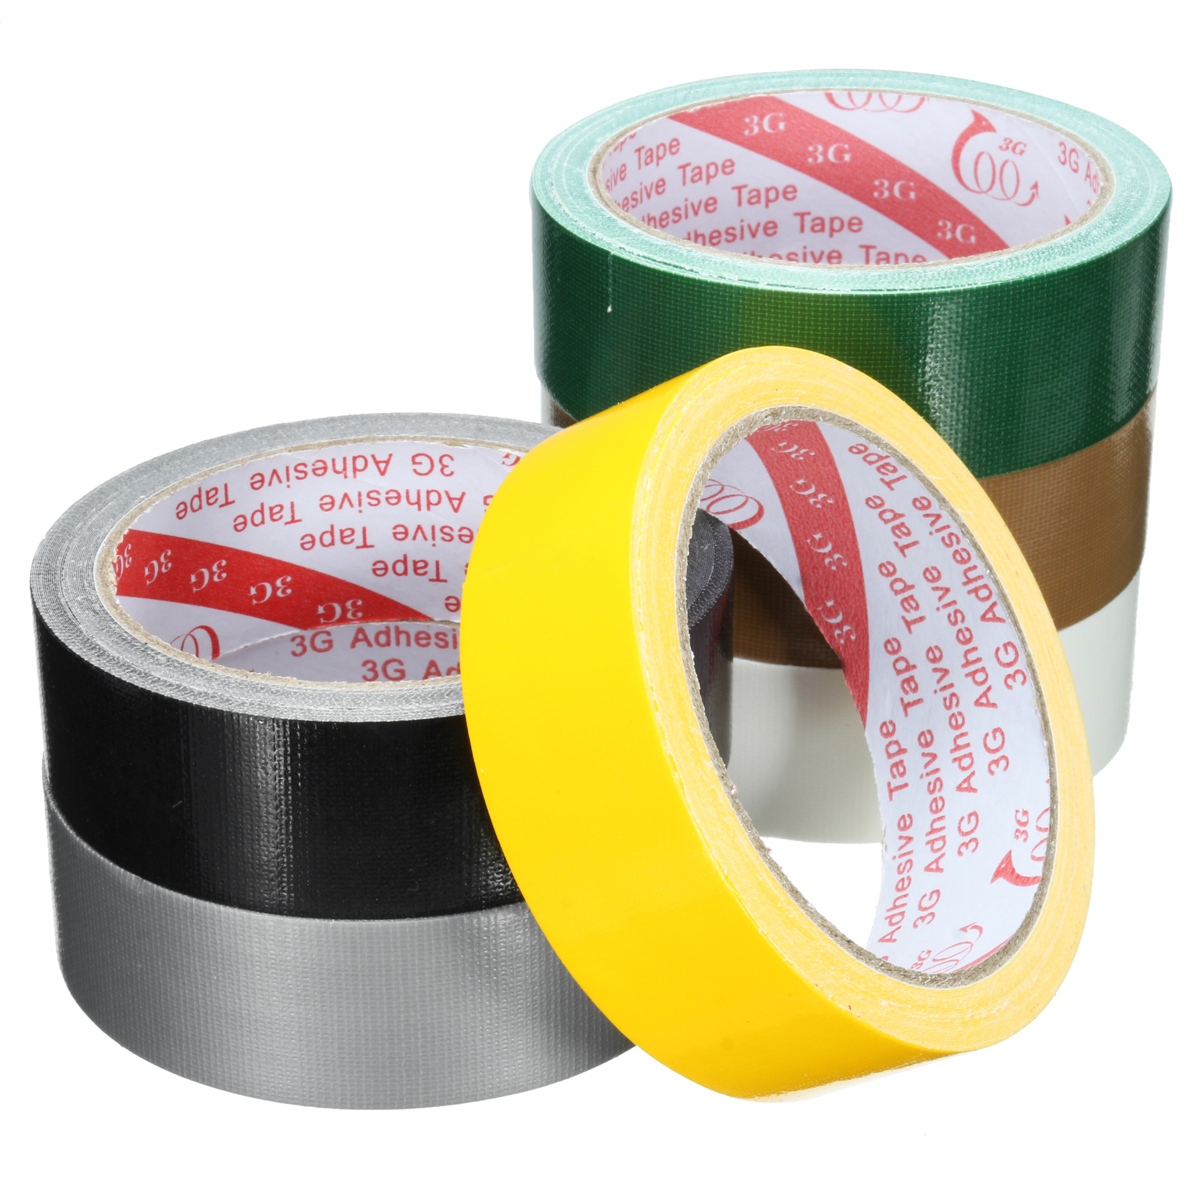 "1.18""x393"" Waterproof Self Adhesive Repair Cloth Tape Performance carpet tape Repair Tape Self Adhesive Tape Packaging Tape Duct Pipe Wrap Carpet"